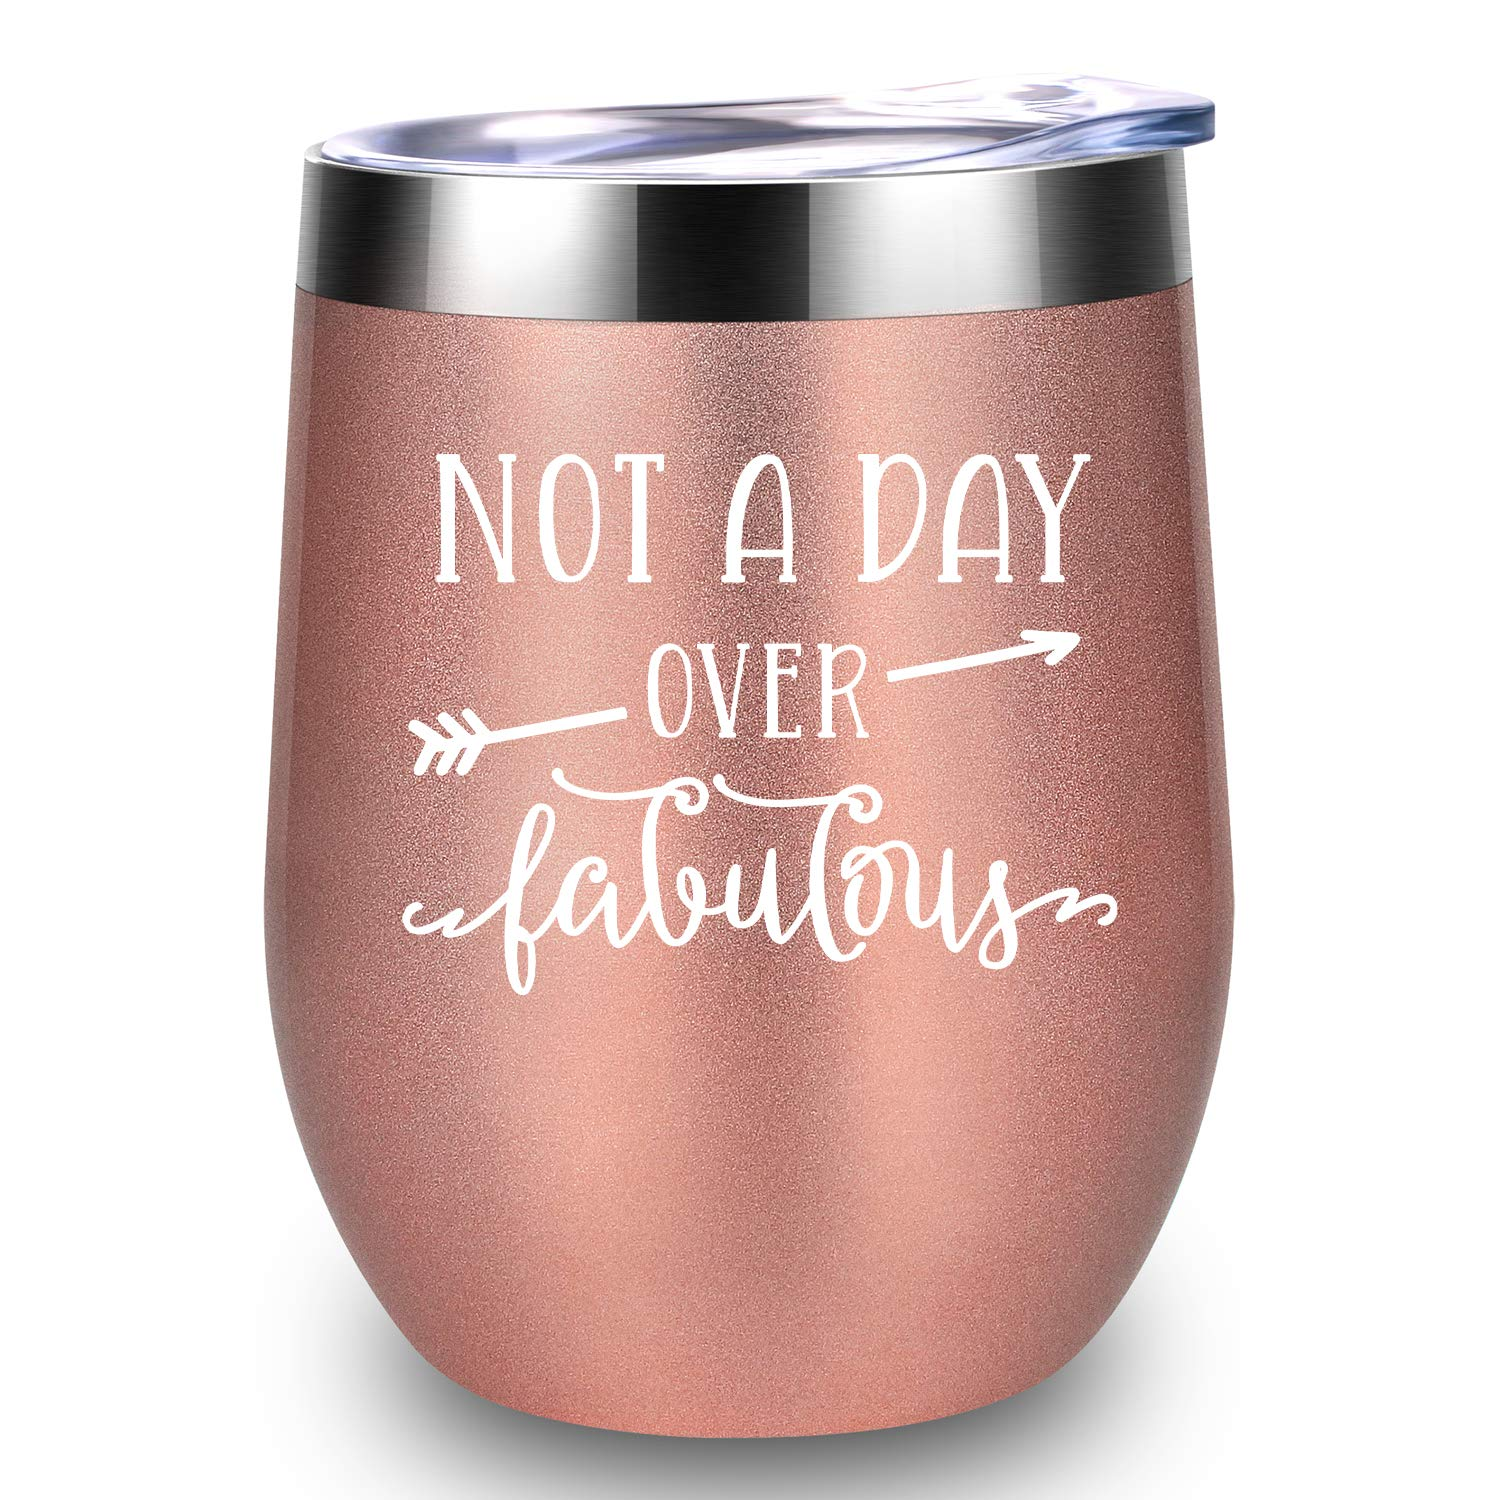 Not A Day Over Fabulous - LEADO Stainless Steel Wine Tumbler Insulated Novelty Glass w/Lid - Funny Birthday Mothers Day Christmas Gifts Ideas for Her Women - 30th 40th 50th 60th Party Decorations